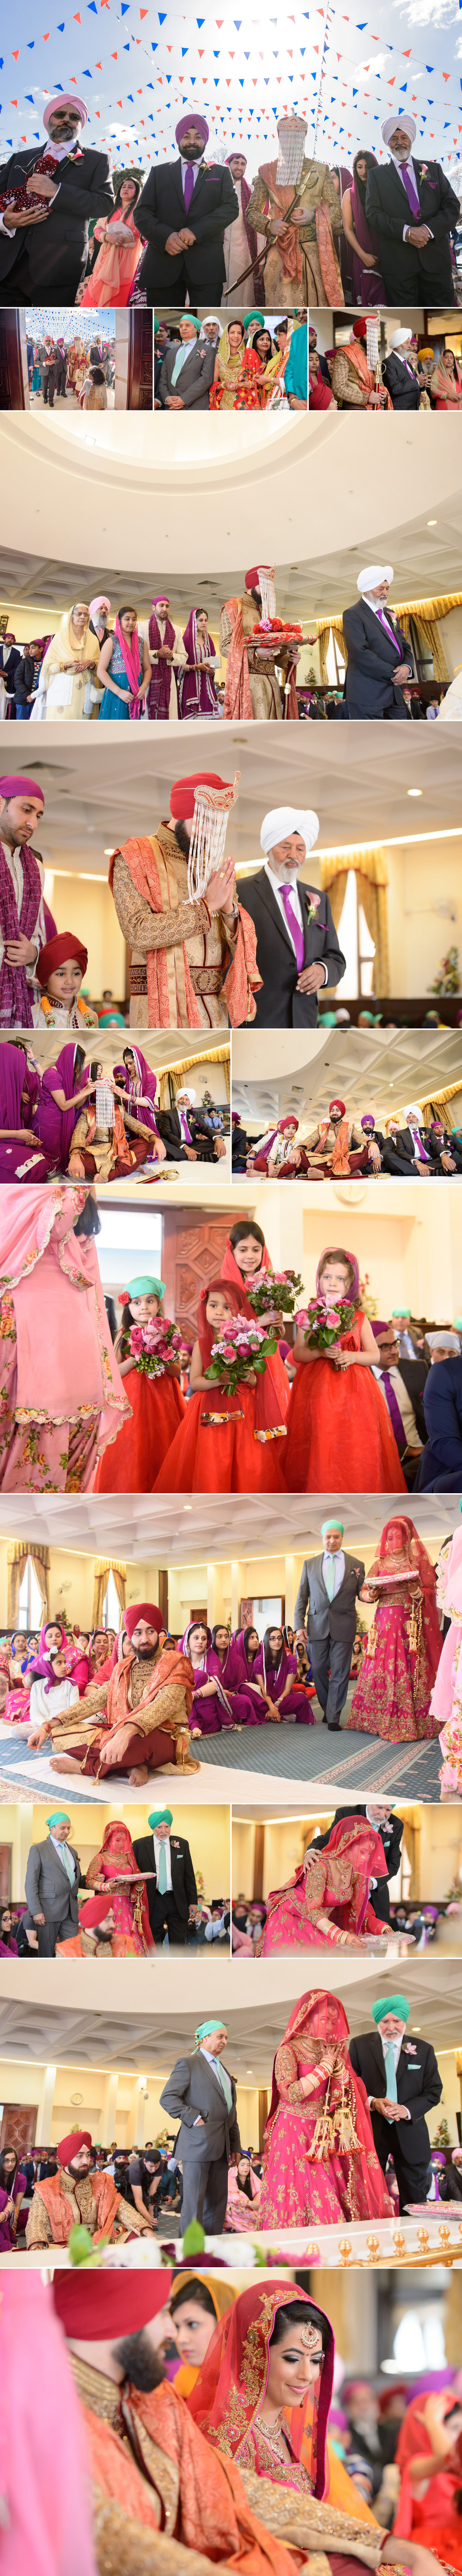 satnam photography sikh wedding ceremony alice way gurdwara london hounslow wedding photography-4